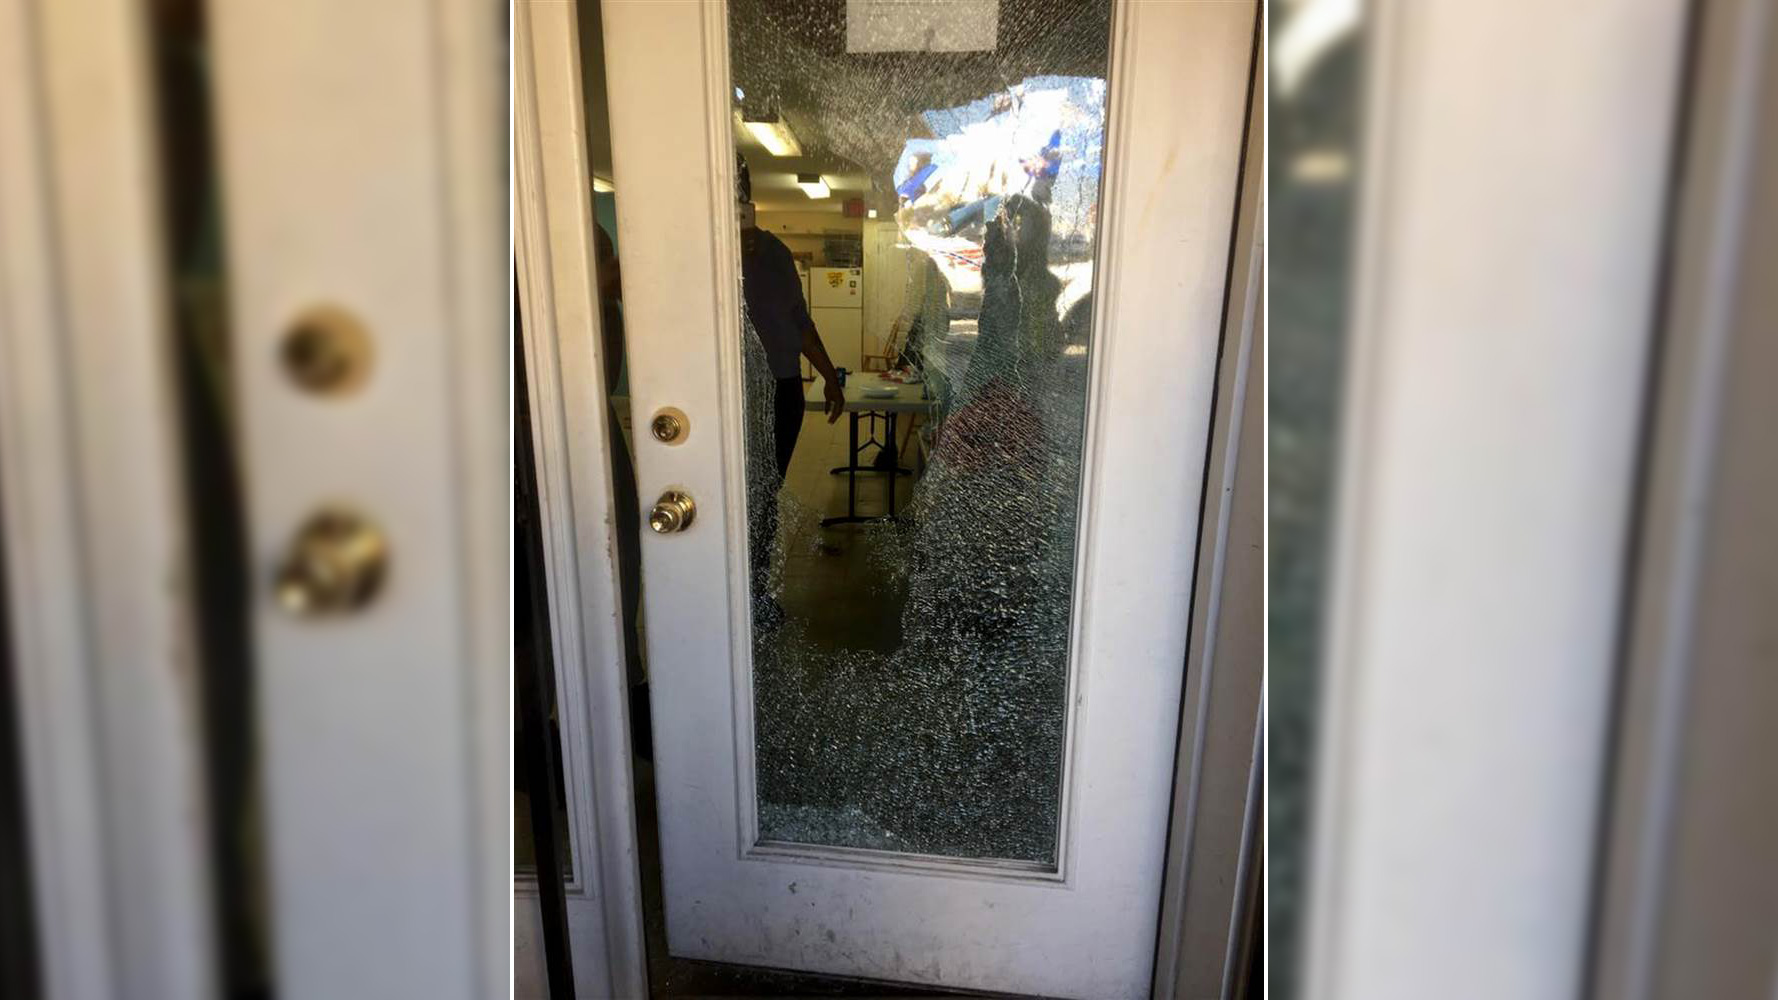 Casa Ruby, a Washington, D.C., LGBTQ advocacy organization, was vandalized and a staff member assaulted two days after Mayor Muriel Bowser reported a 100 percent increase in hate crimes against the transgender community.